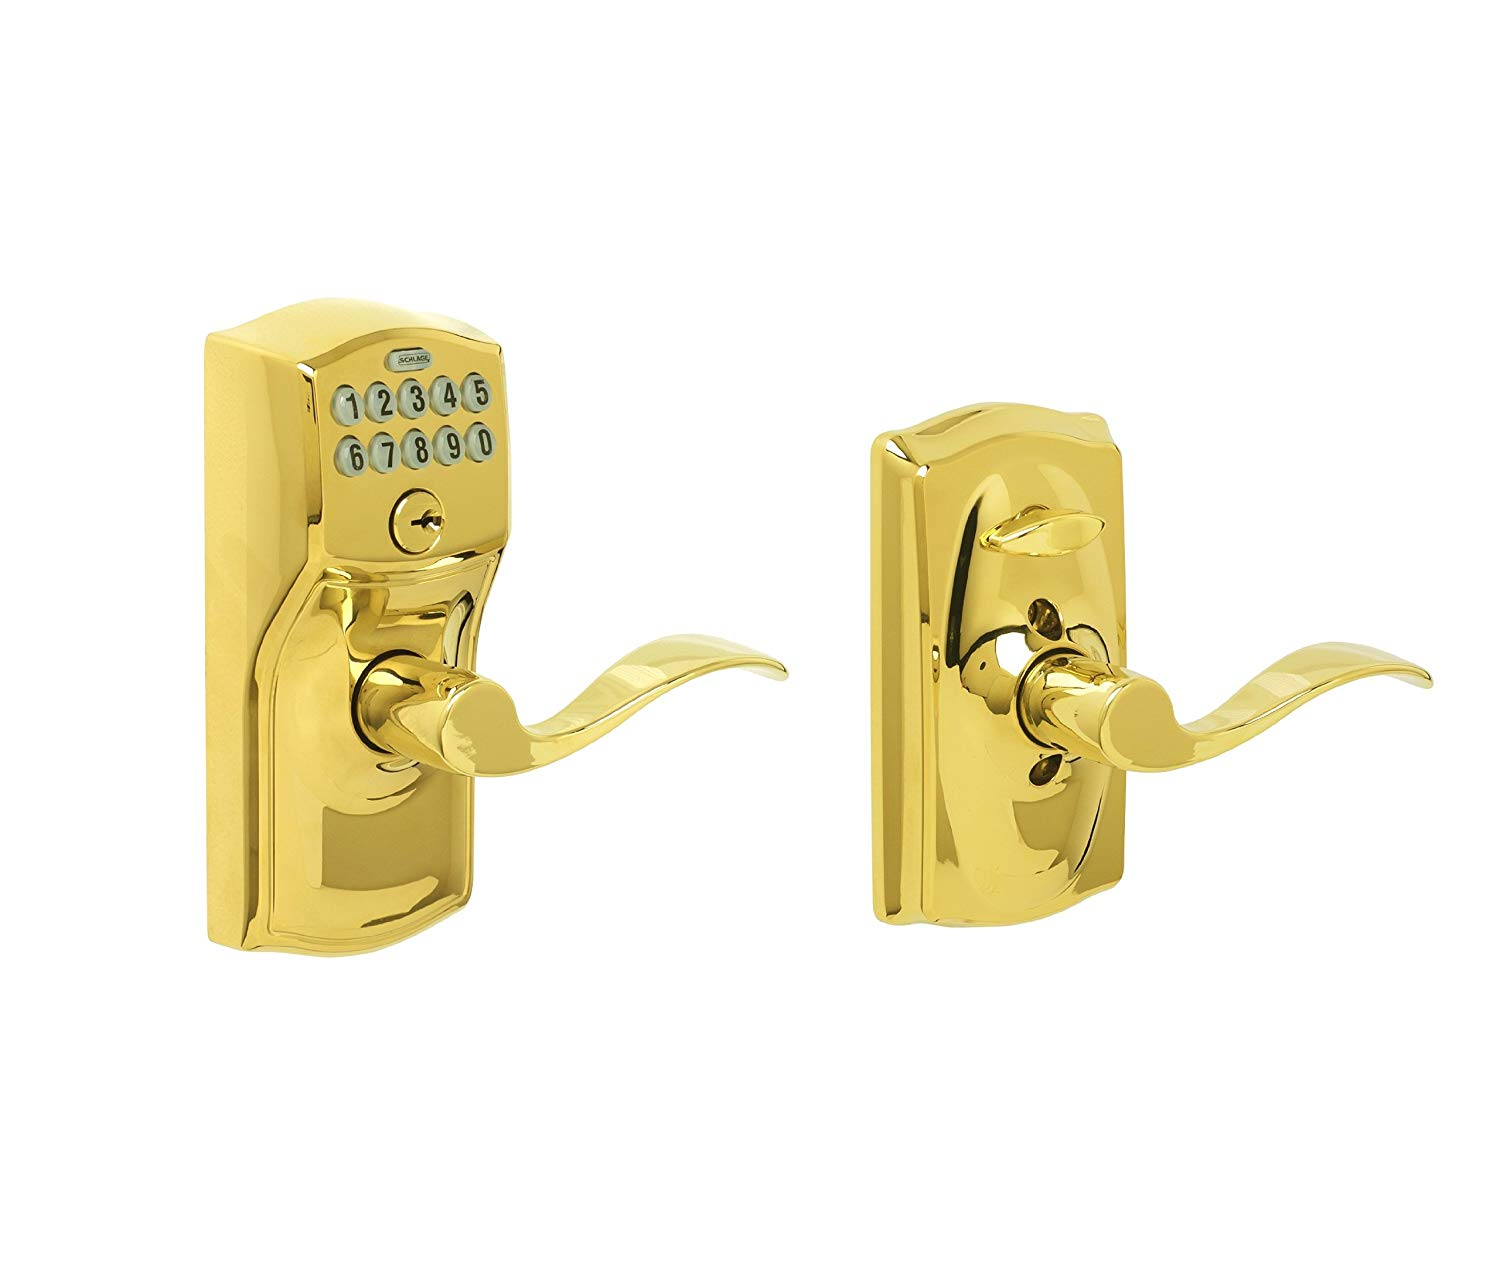 #11 AWESOME COMBINATION DOOR LOCKS NEVER GET LOCKED OUT AGAIN AUTOMATICALLY LOCKS WHEN YOU WALK OUT THE DOOR, BLUE LIGHTED KEY PAD